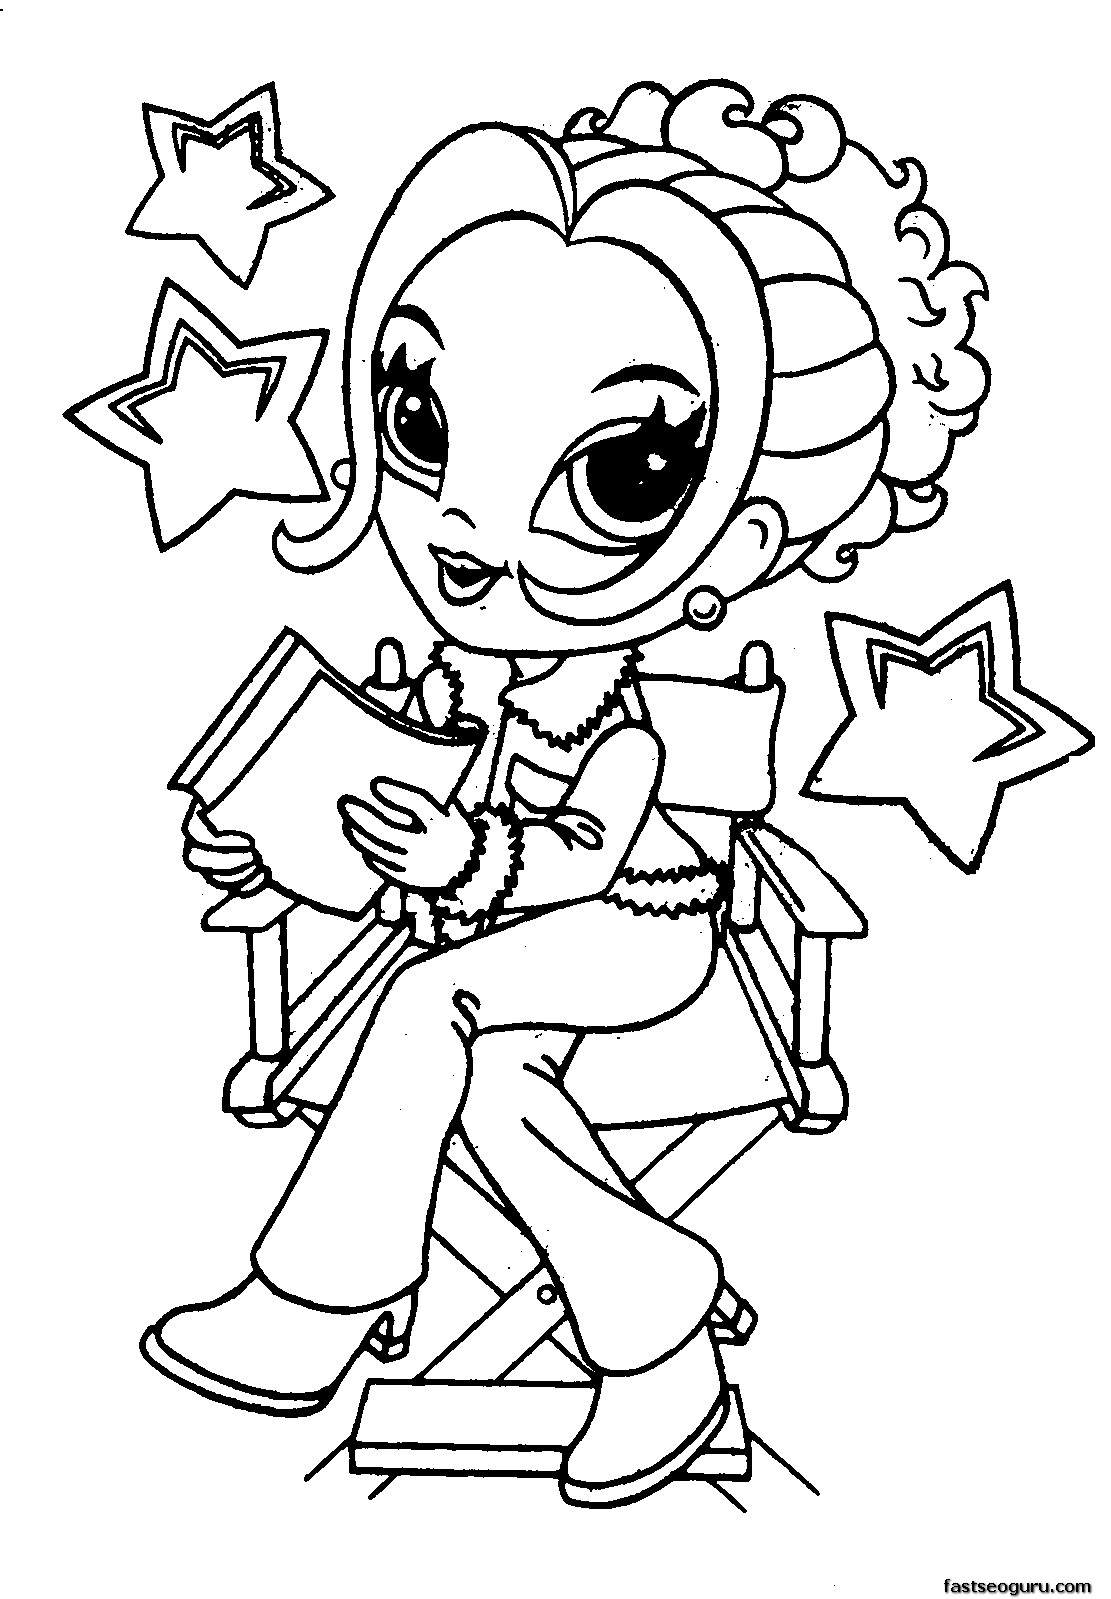 coloring sheets for girls coloring pages for girls best coloring pages for kids coloring for sheets girls